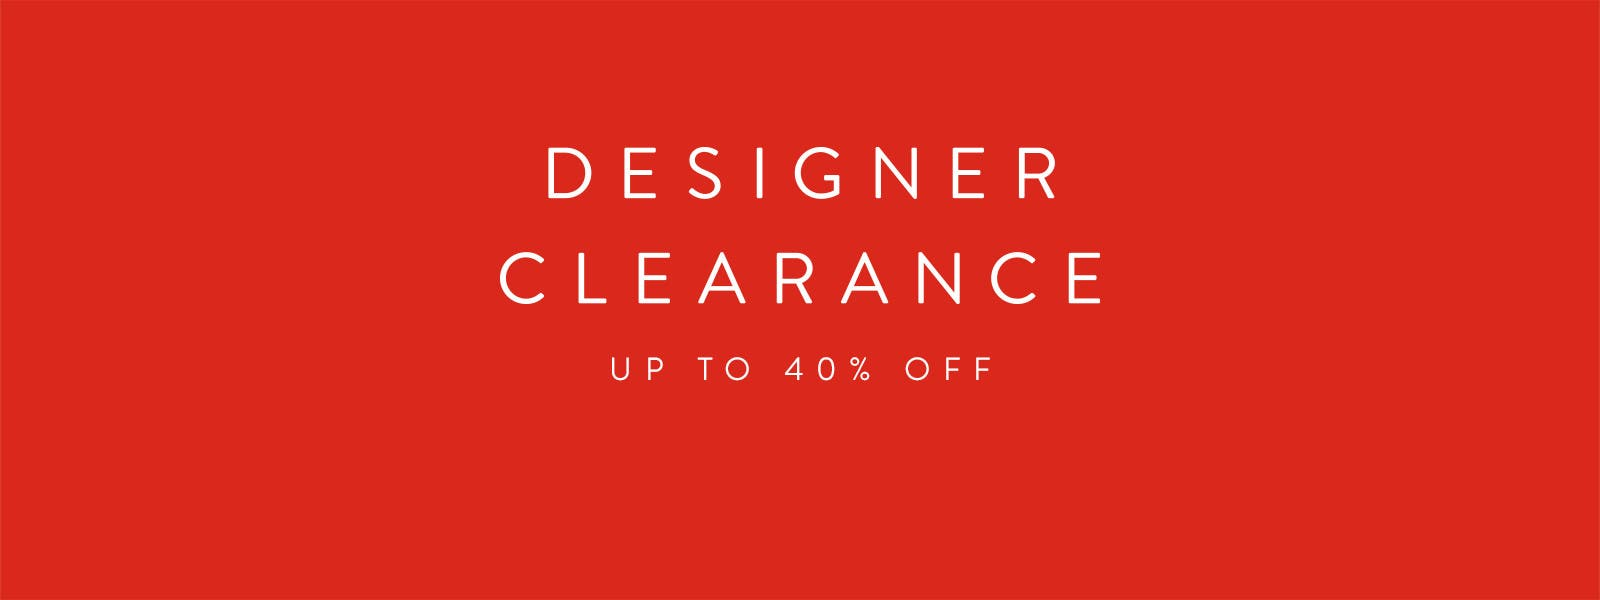 Designer Clearance Sale. Up to 40% off designer handbags and accessories.